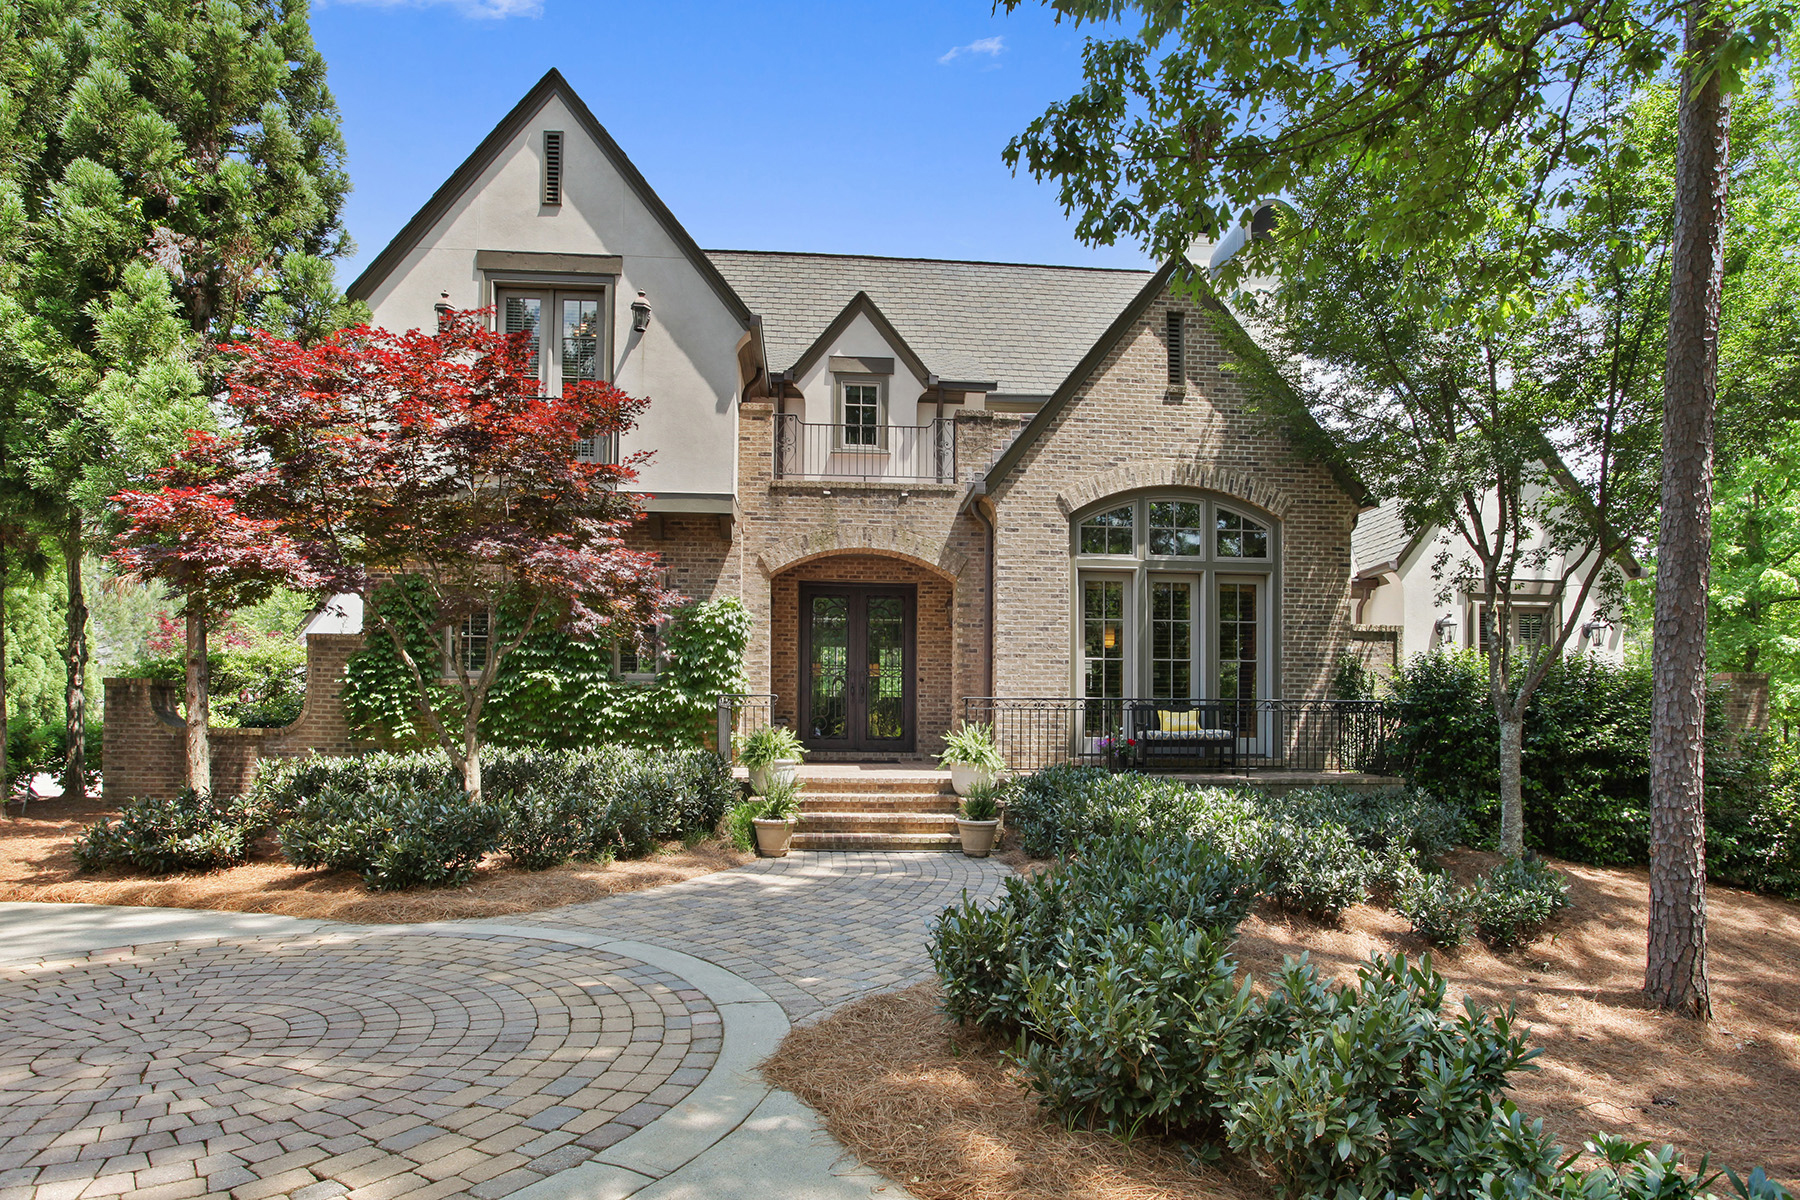 Single Family Home for Sale at Thoughtful Design and Unparalleled Living In The River Club 680 Trinity Place Suwanee, Georgia 30024 United States